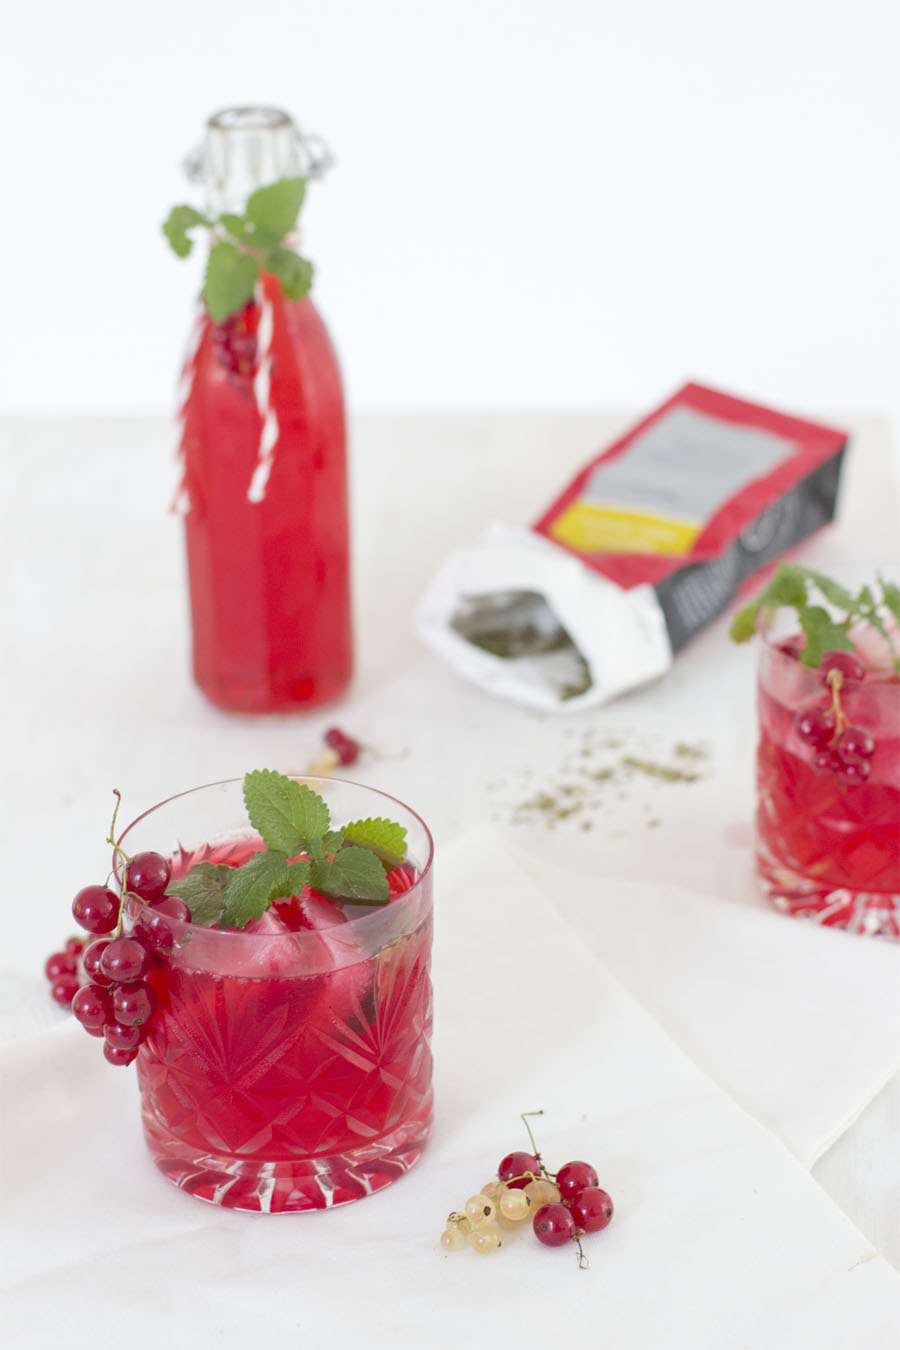 Red currant mate ice tea recipe | LOOK WHAT I MADE ...